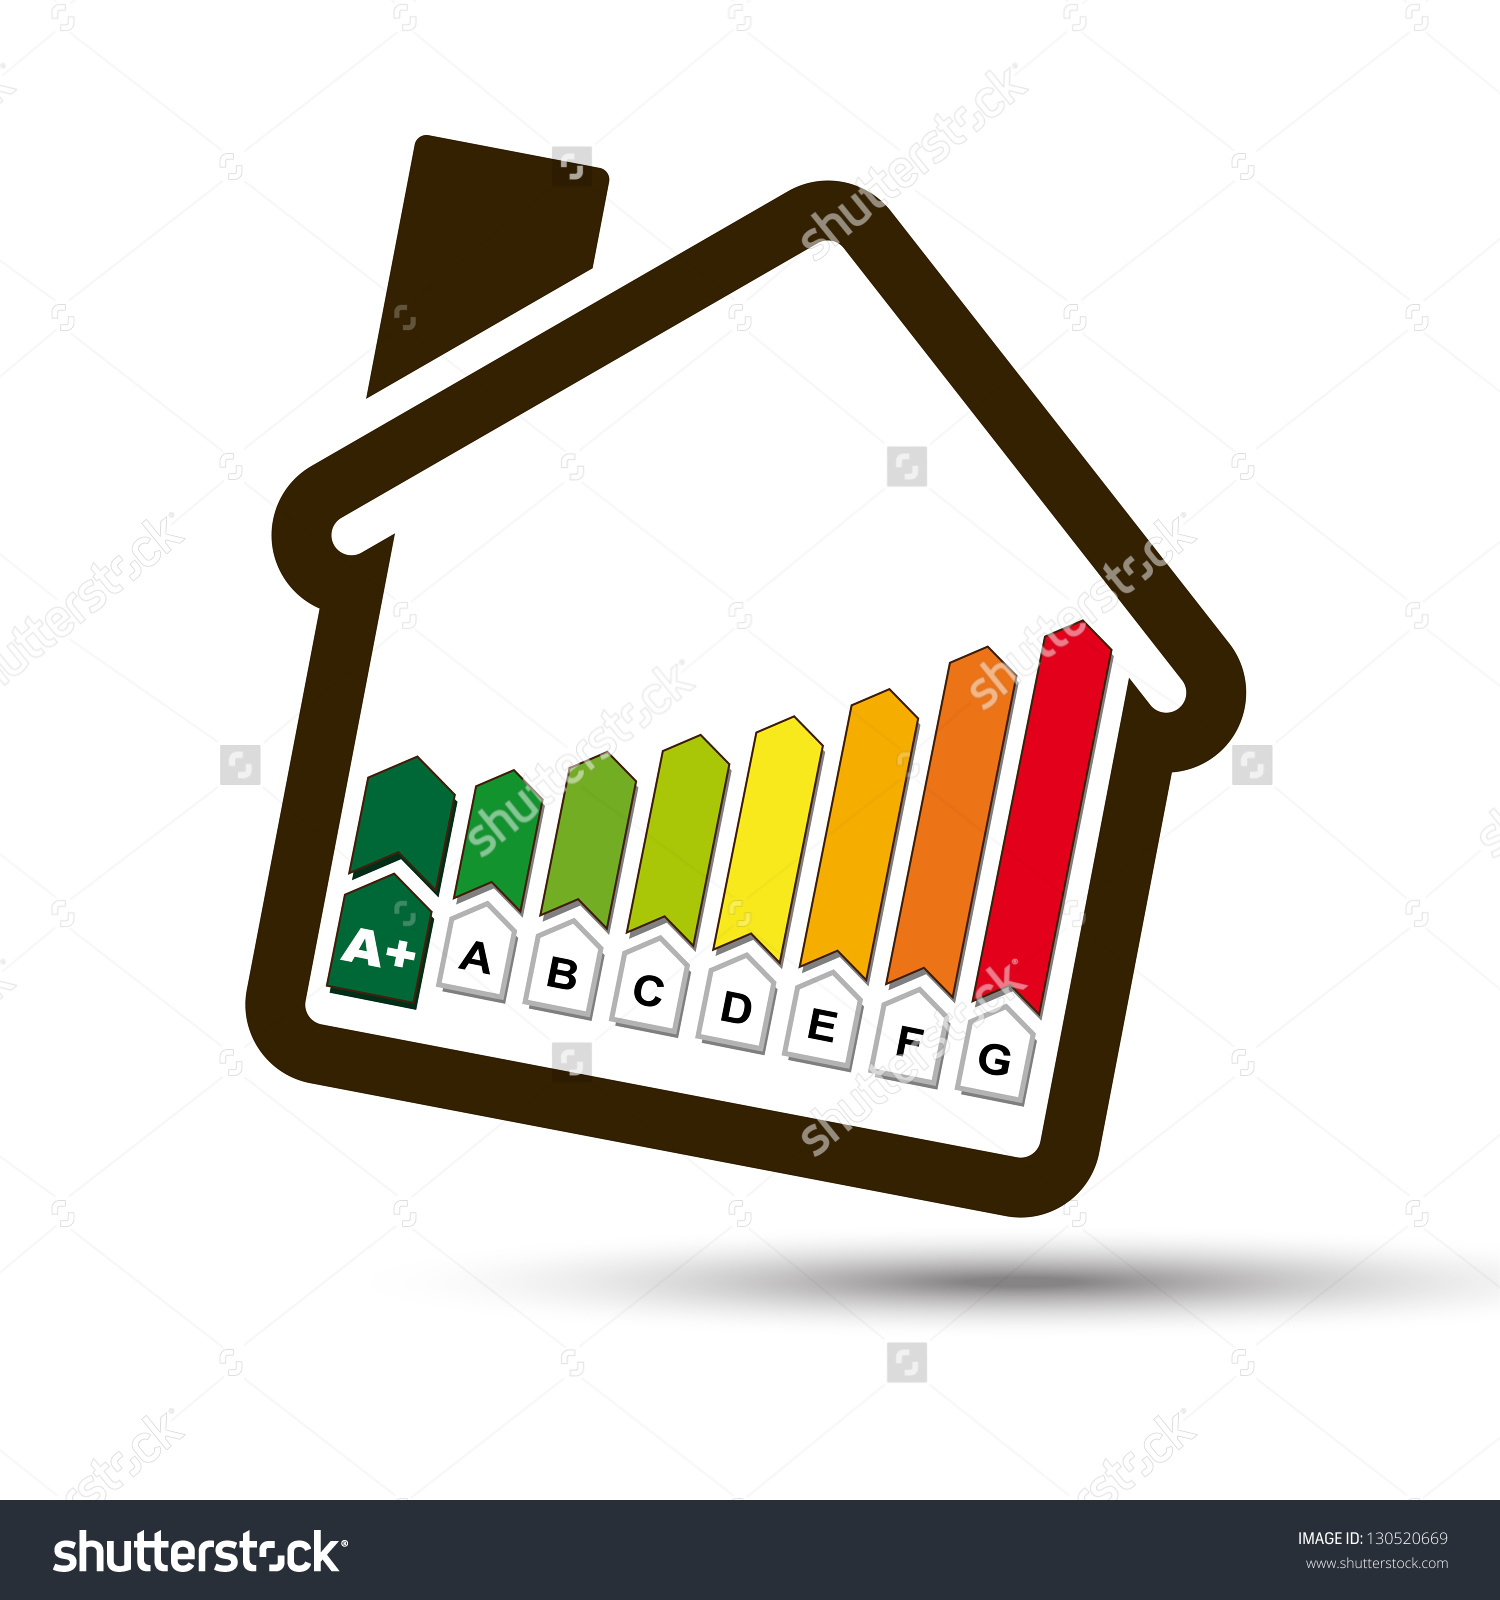 Eco House With Energetic Classes Histogram Symbol. Ecological Home.